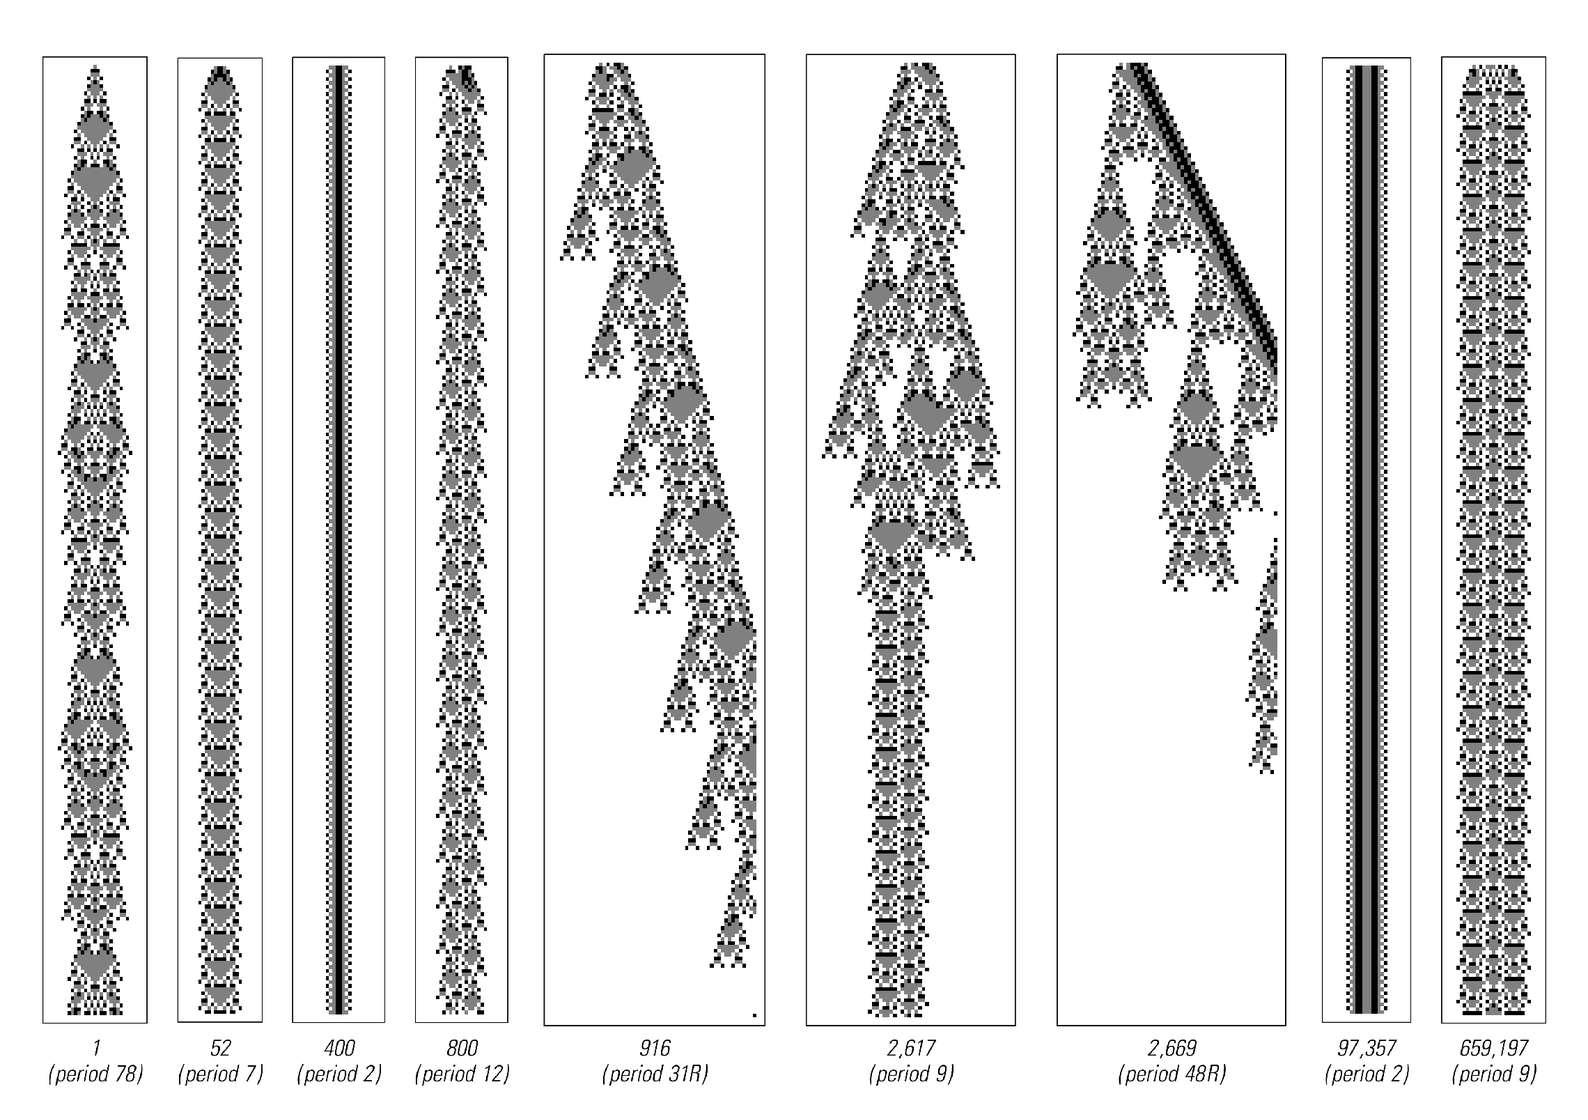 Persistent structures in code 1329 cellular automaton